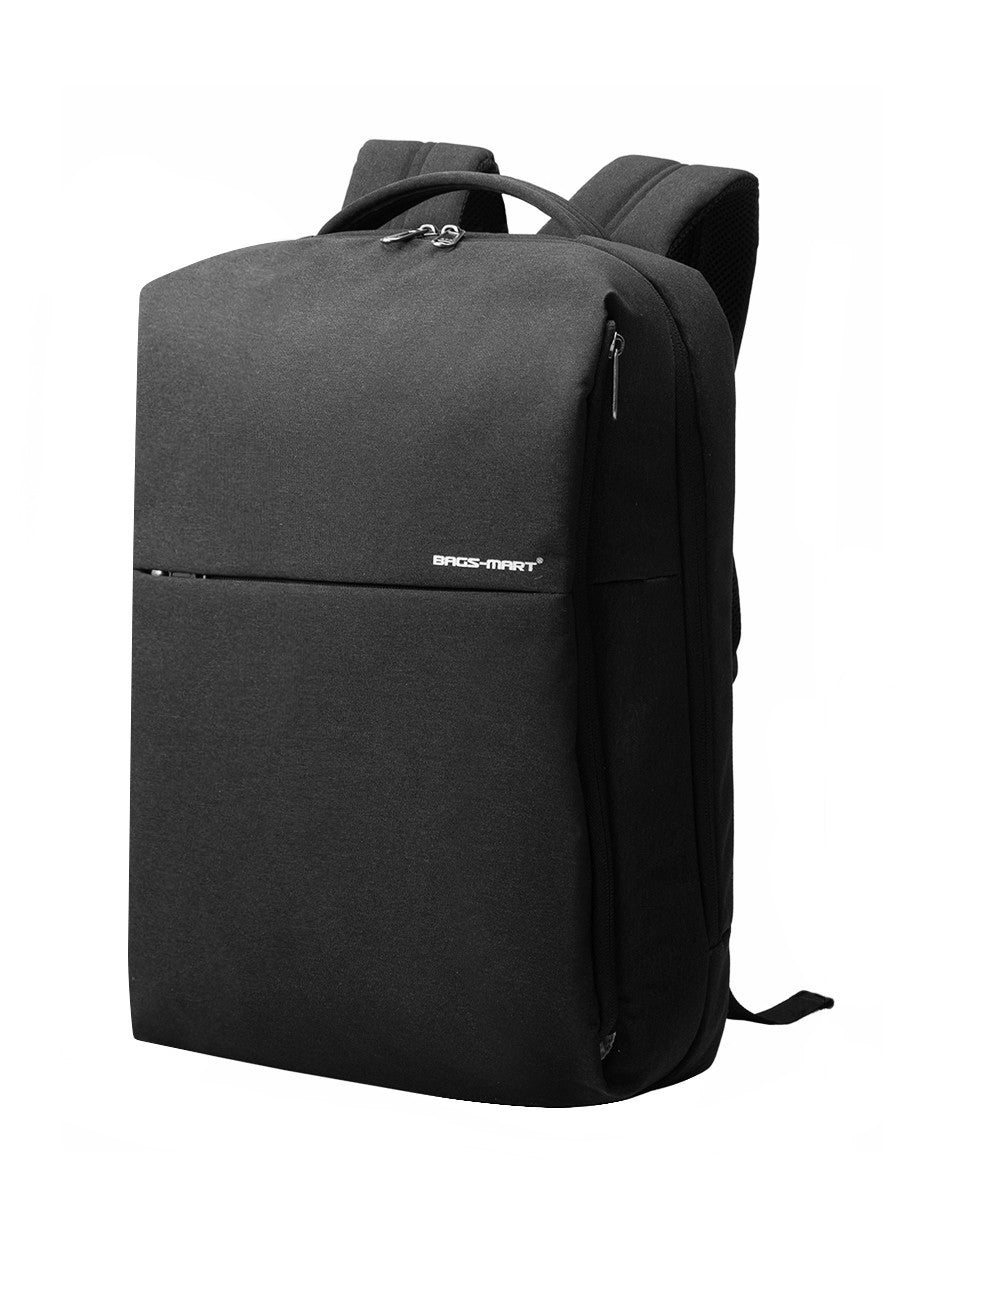 "BAGSMART Theft-proof Minimal Computer Backpack for 17"" Laptop - I Have Wanderlust"